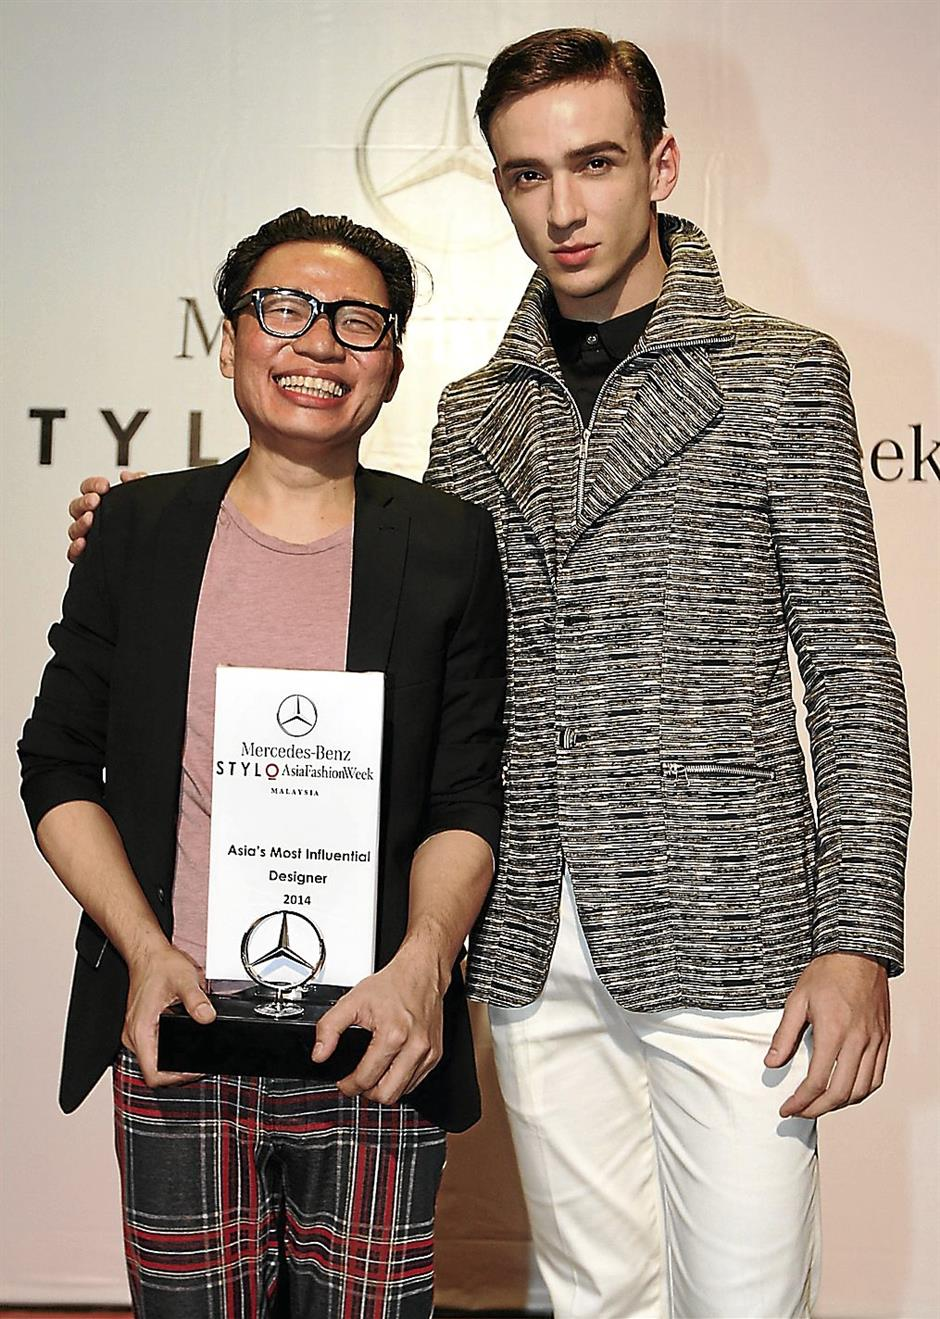 Avel Bacudio, named 'Asia's Most Influential Designer of 2014', with a model wearing his designs.